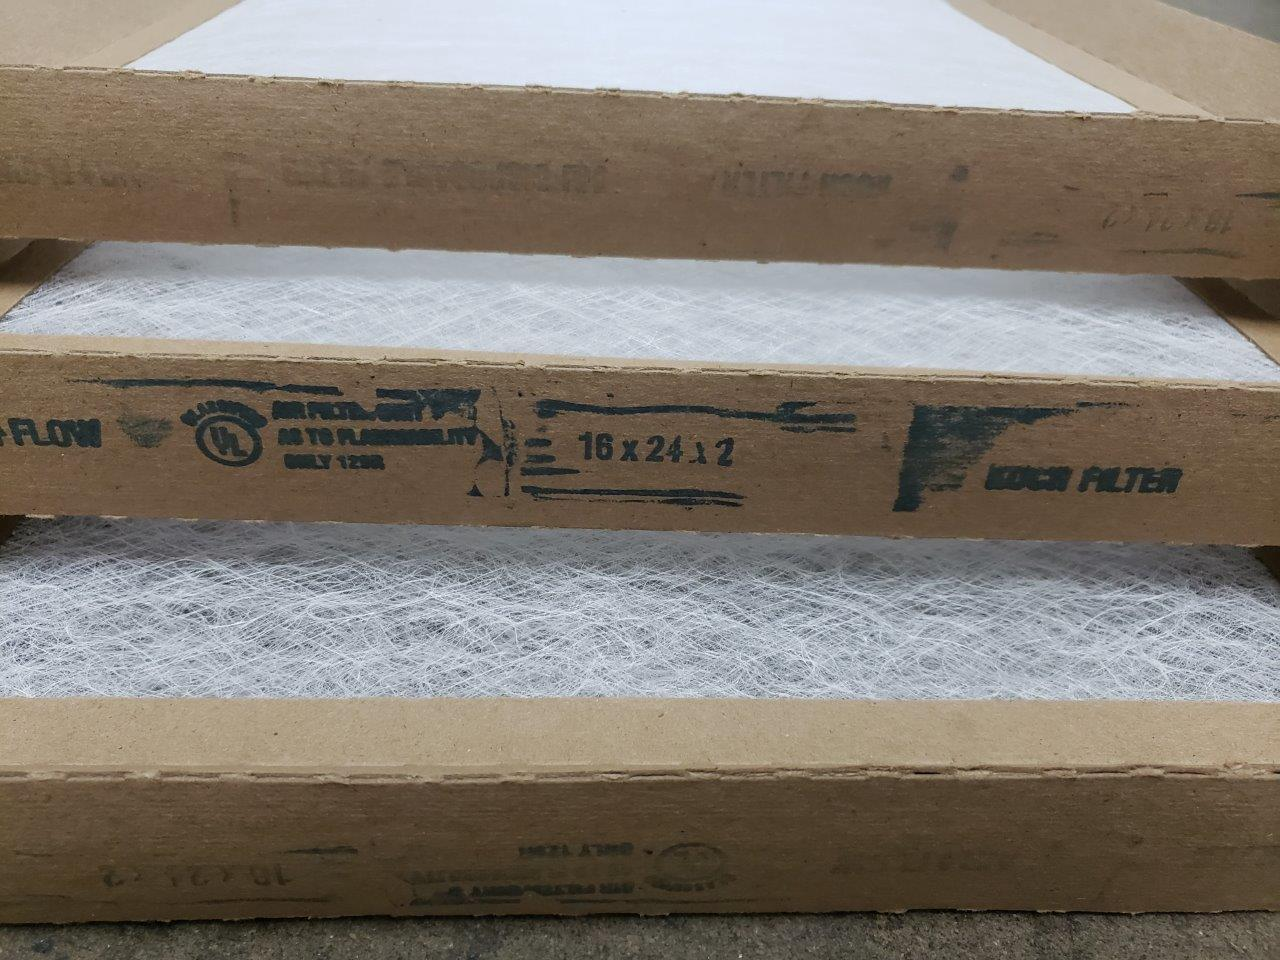 3x Koch 16x24x2 Fiberglass Disposable Furnace Filters 16 x 24 x 2 filter